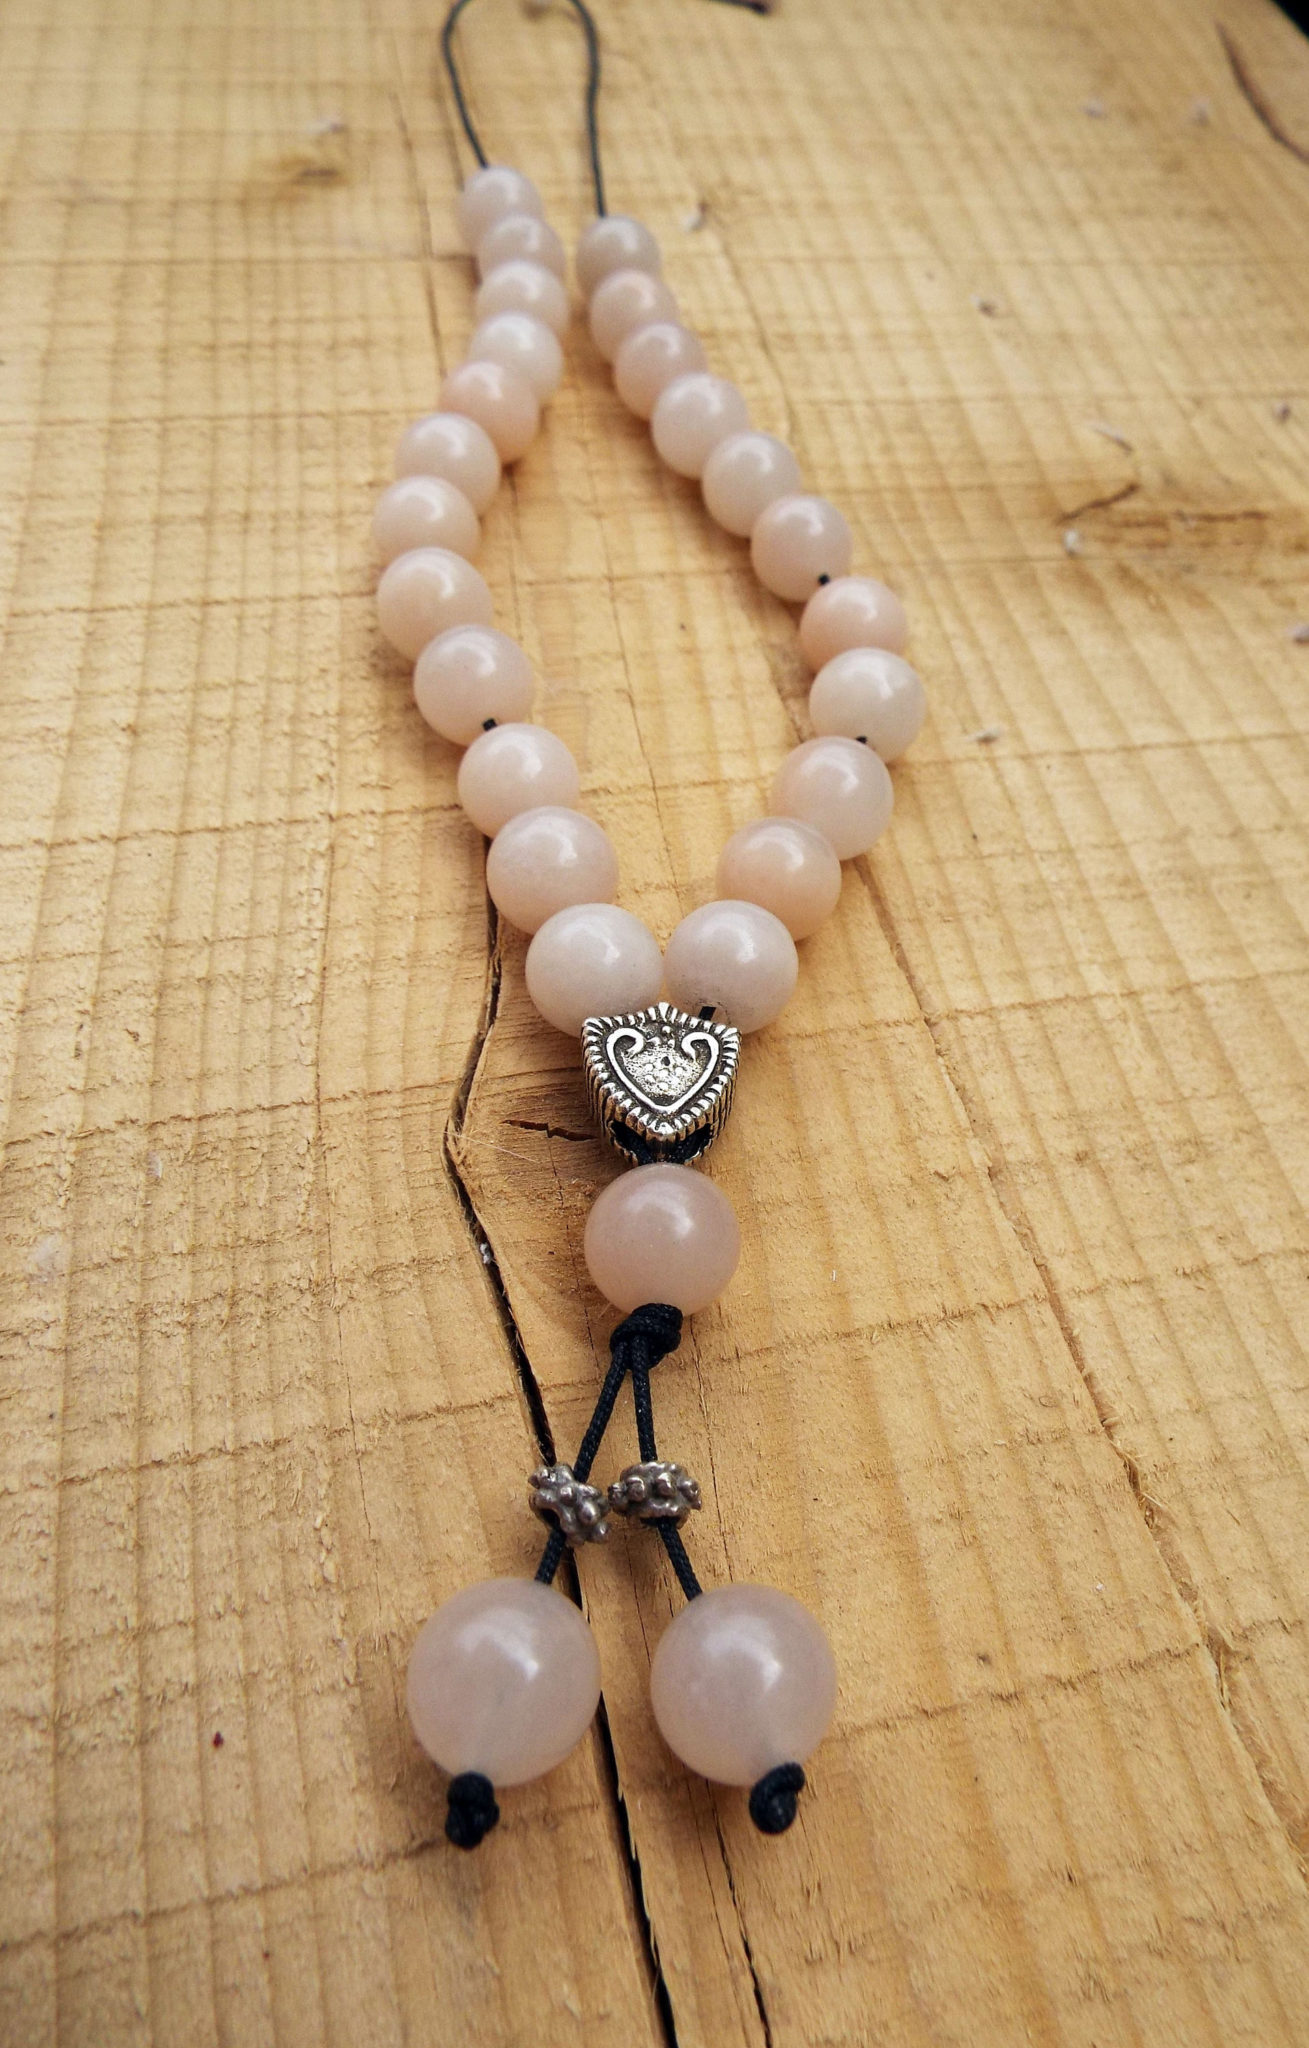 Komboloi Greek Worry Beads Pink Alabaster Prayer Beads Rosary Beads Turkish Tasbih Handmade Gemstone